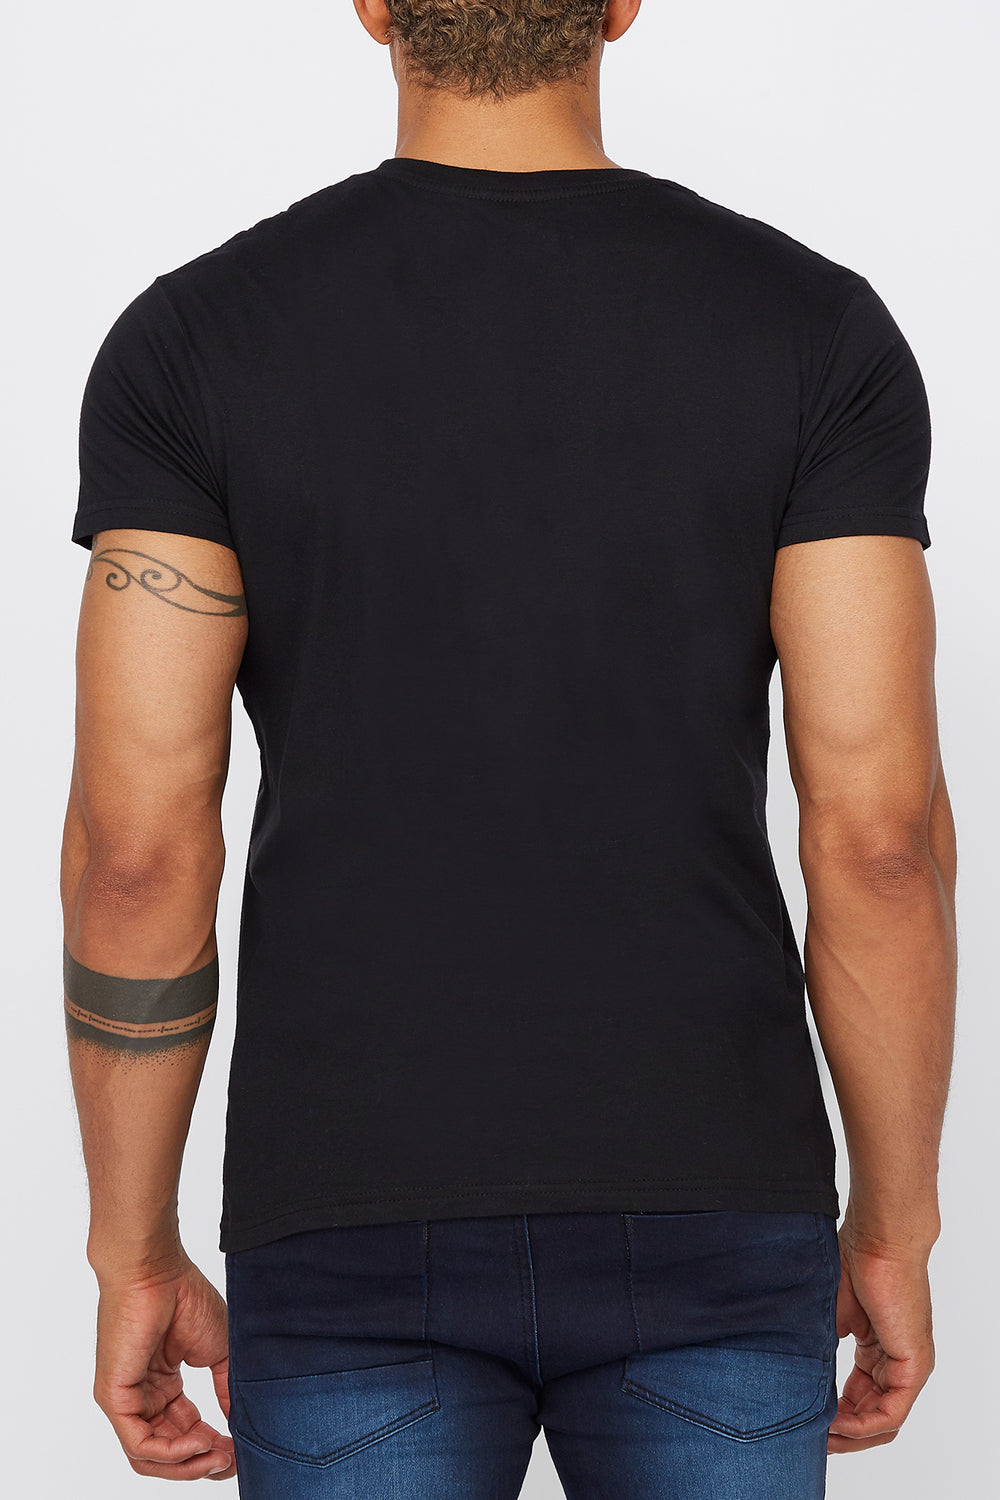 Mens NASA Logo Black T-Shirt Black